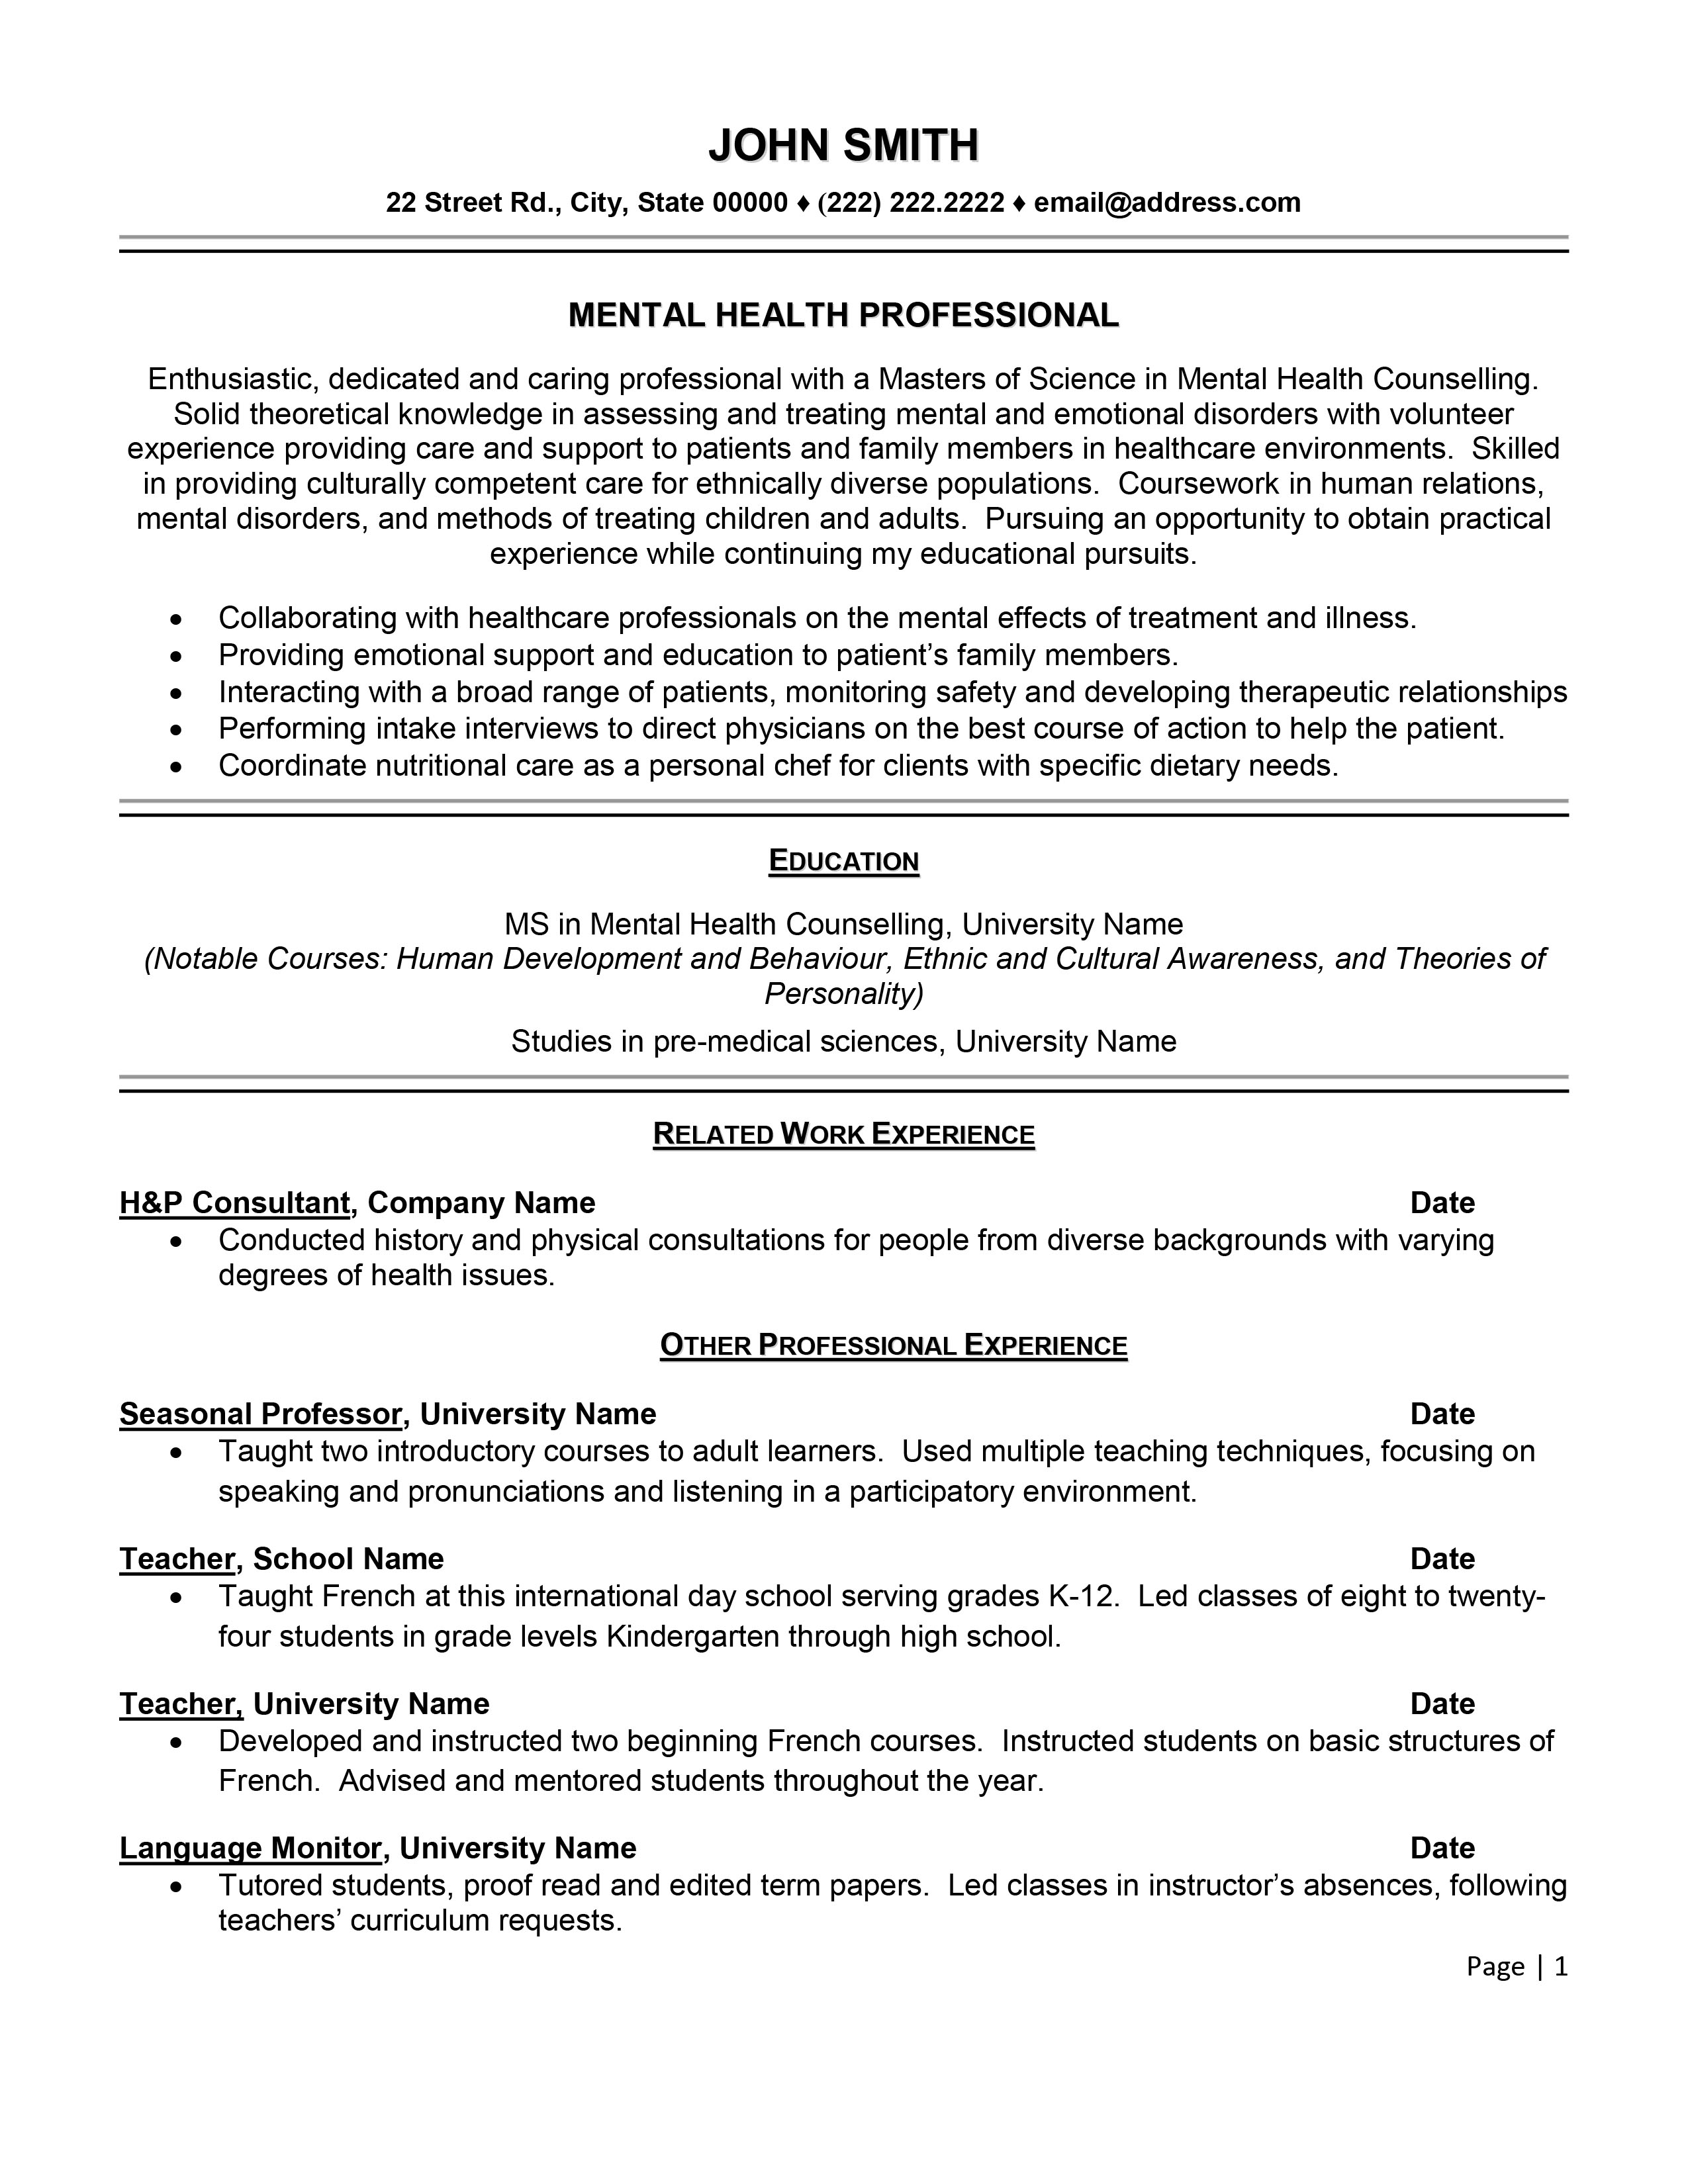 care cv template home care assistant curriculum vitae builder  qorb   digimerge net  Perfect Resume Example Resume And Cover Letter